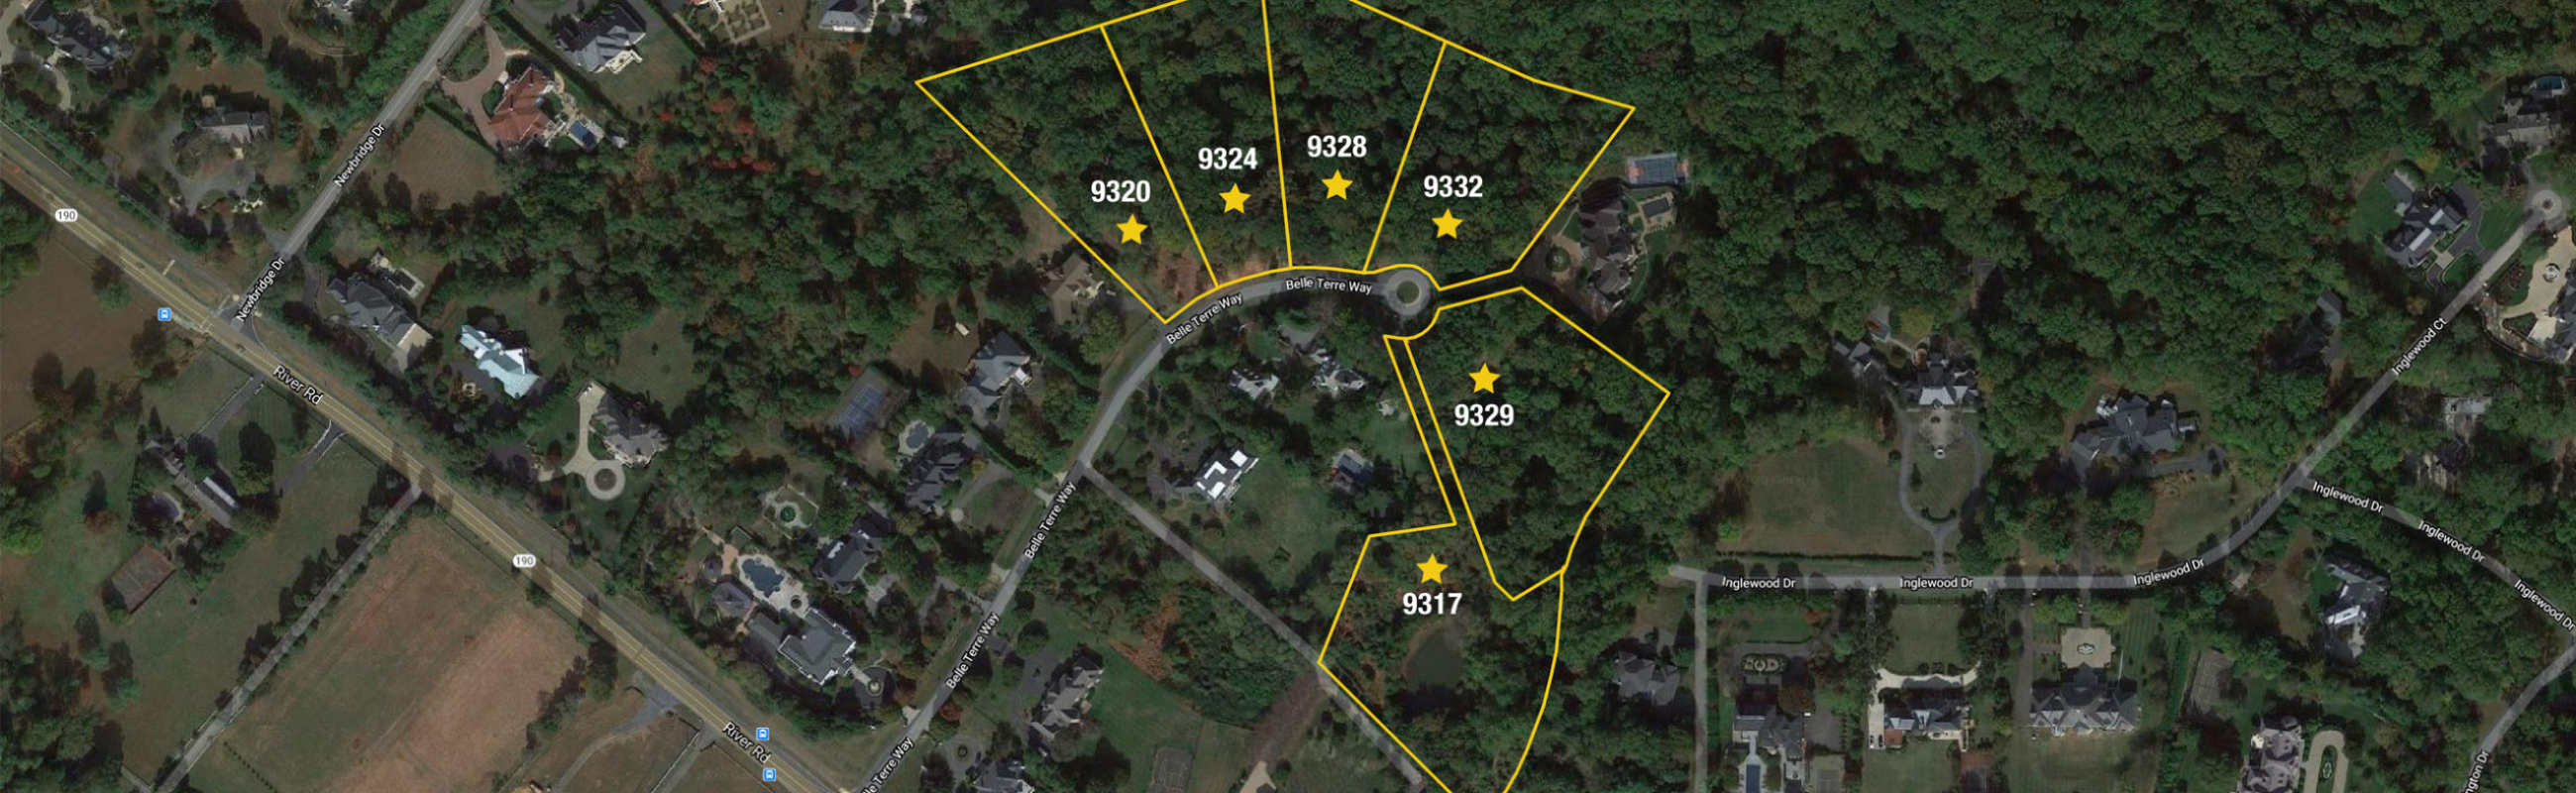 aerial image showing the site outlines for 9320, 9324, 9328, 9332, 9329 and 9317 Belle Terre Way, Potomac, MD 20854